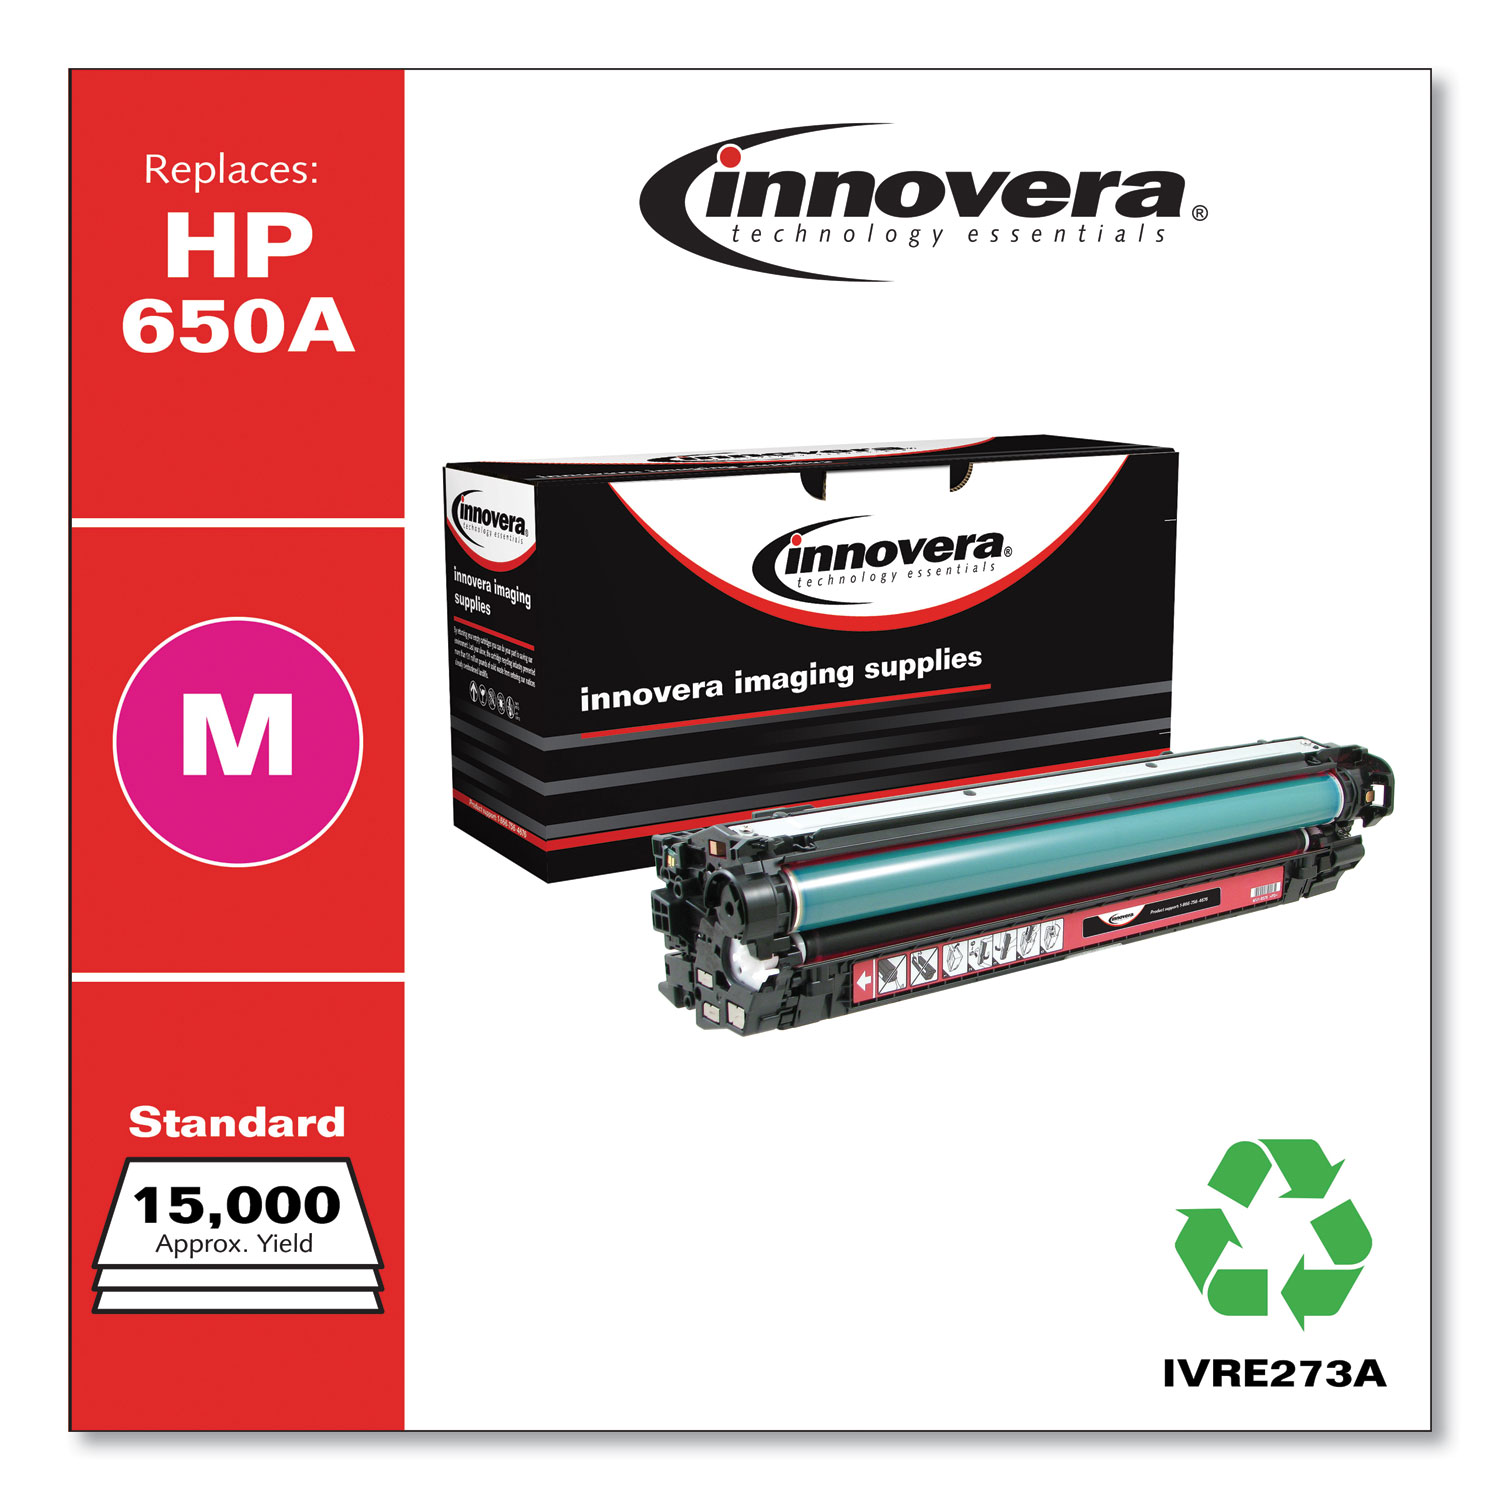 Remanufactured Magenta Toner, Replacement for HP 650A (CE273A), 15,000 Page-Yield IVRE273A